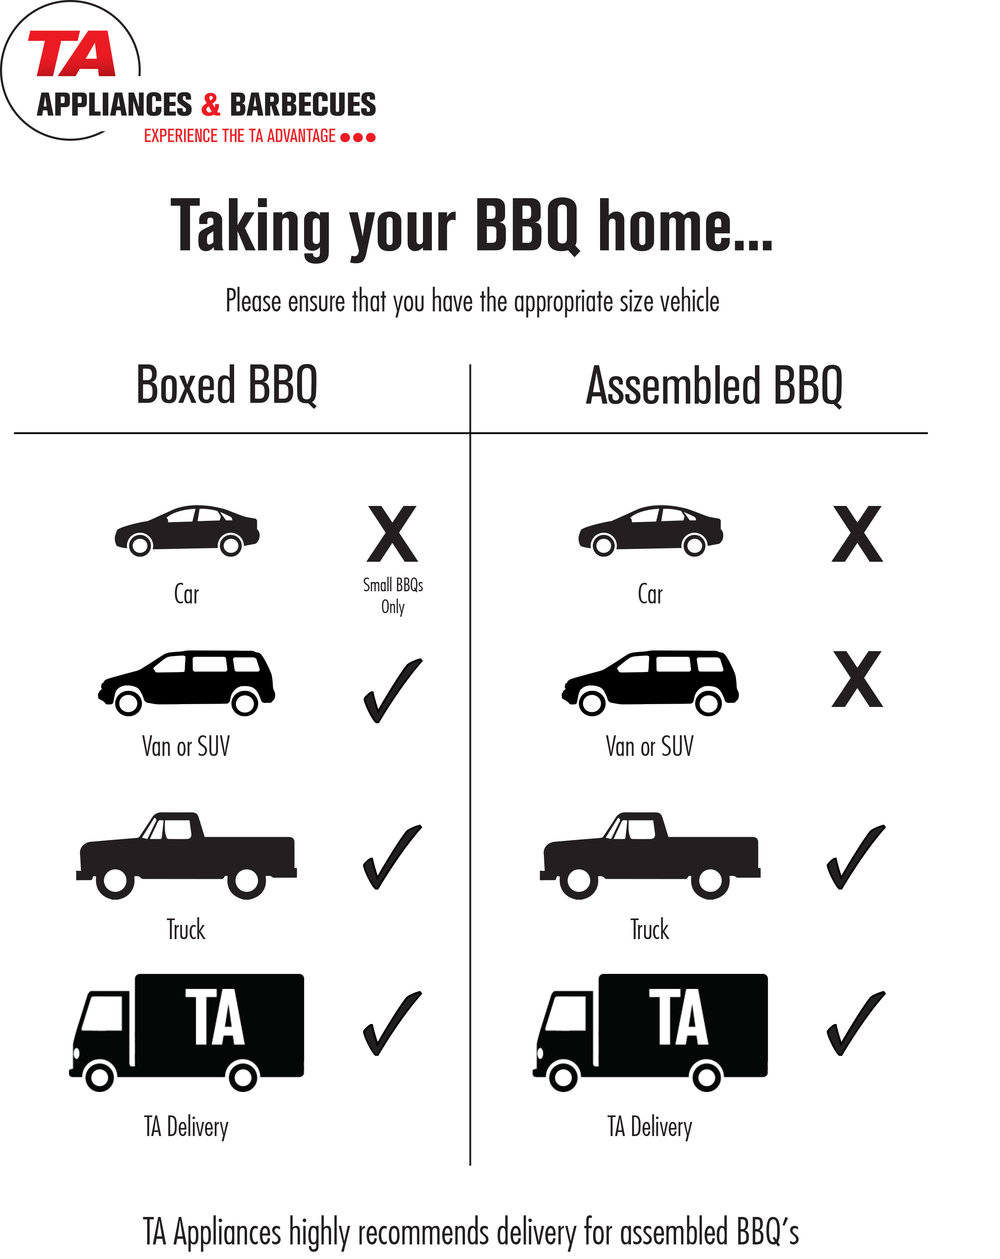 Taking your BBQ home (Print).jpg